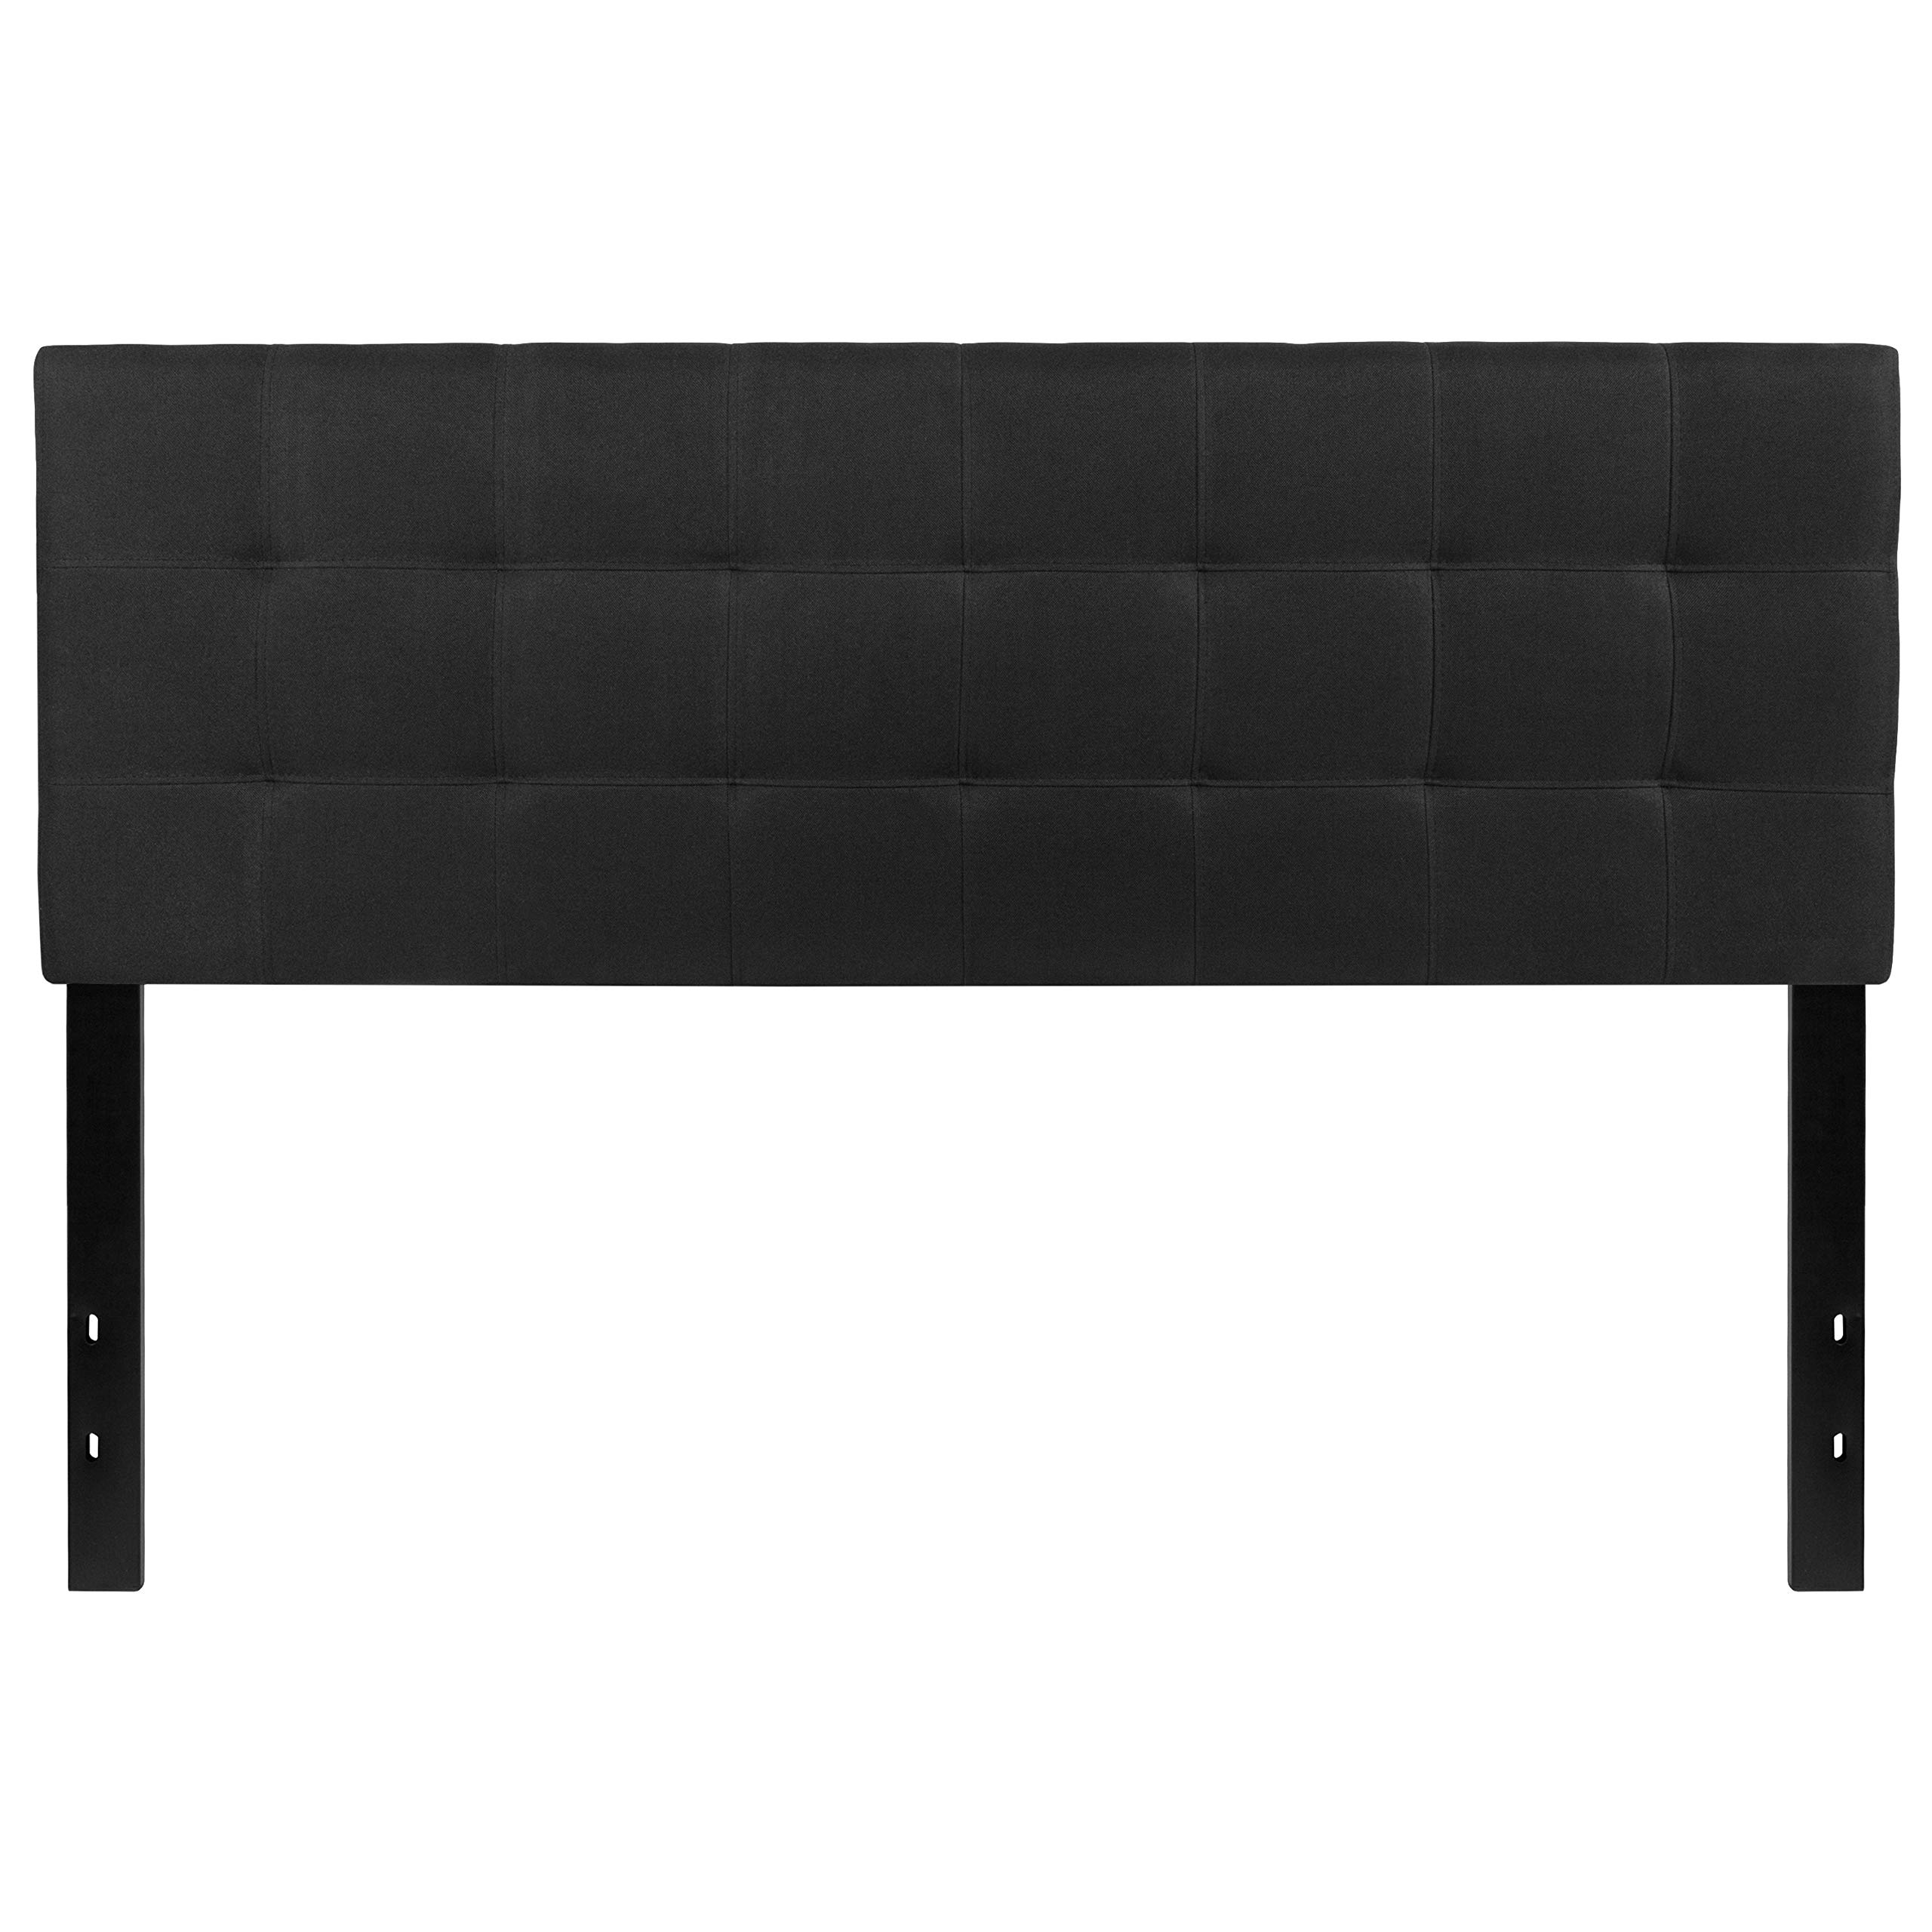 Flash Furniture Bedford Tufted Upholstered Queen Size Headboard in Black Fabric